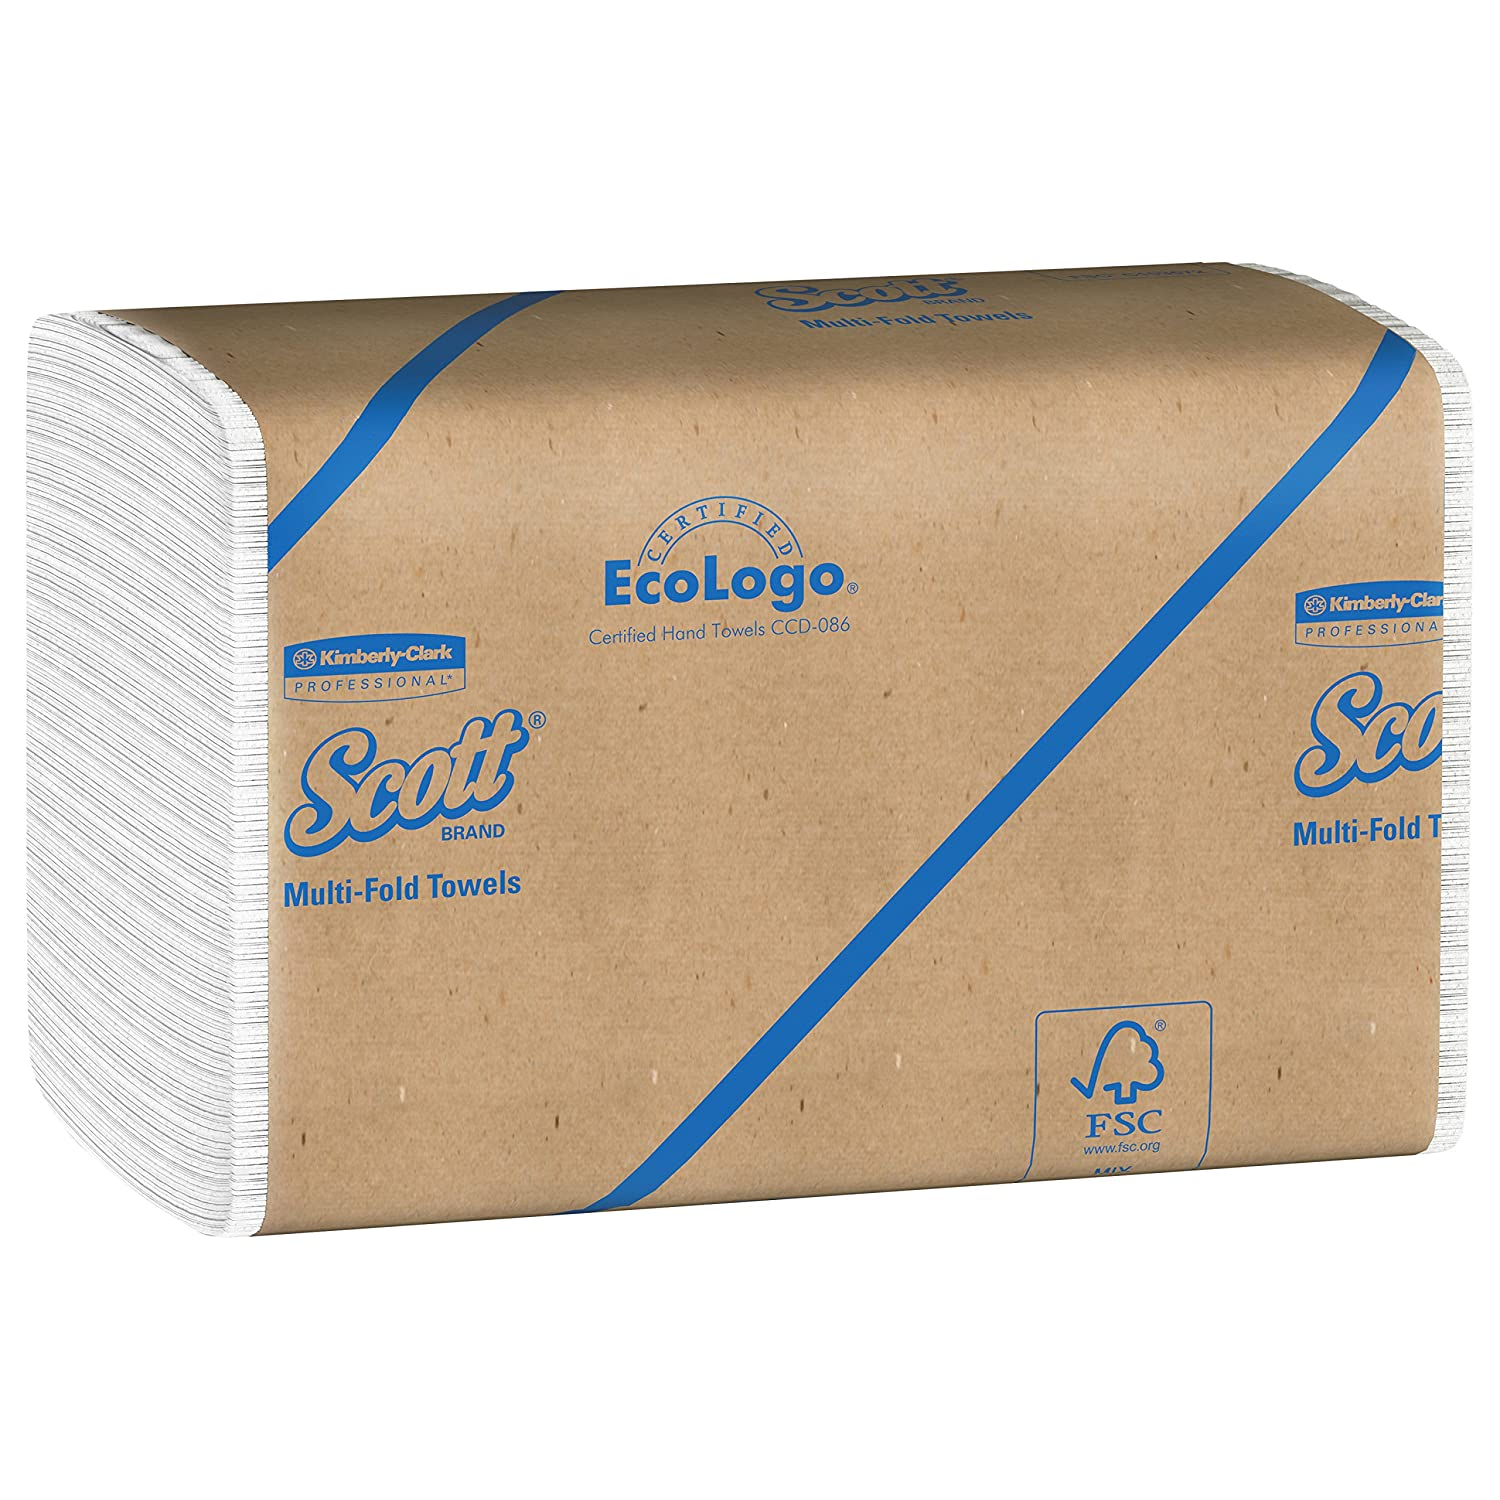 Scott Paper Towels from Amazon